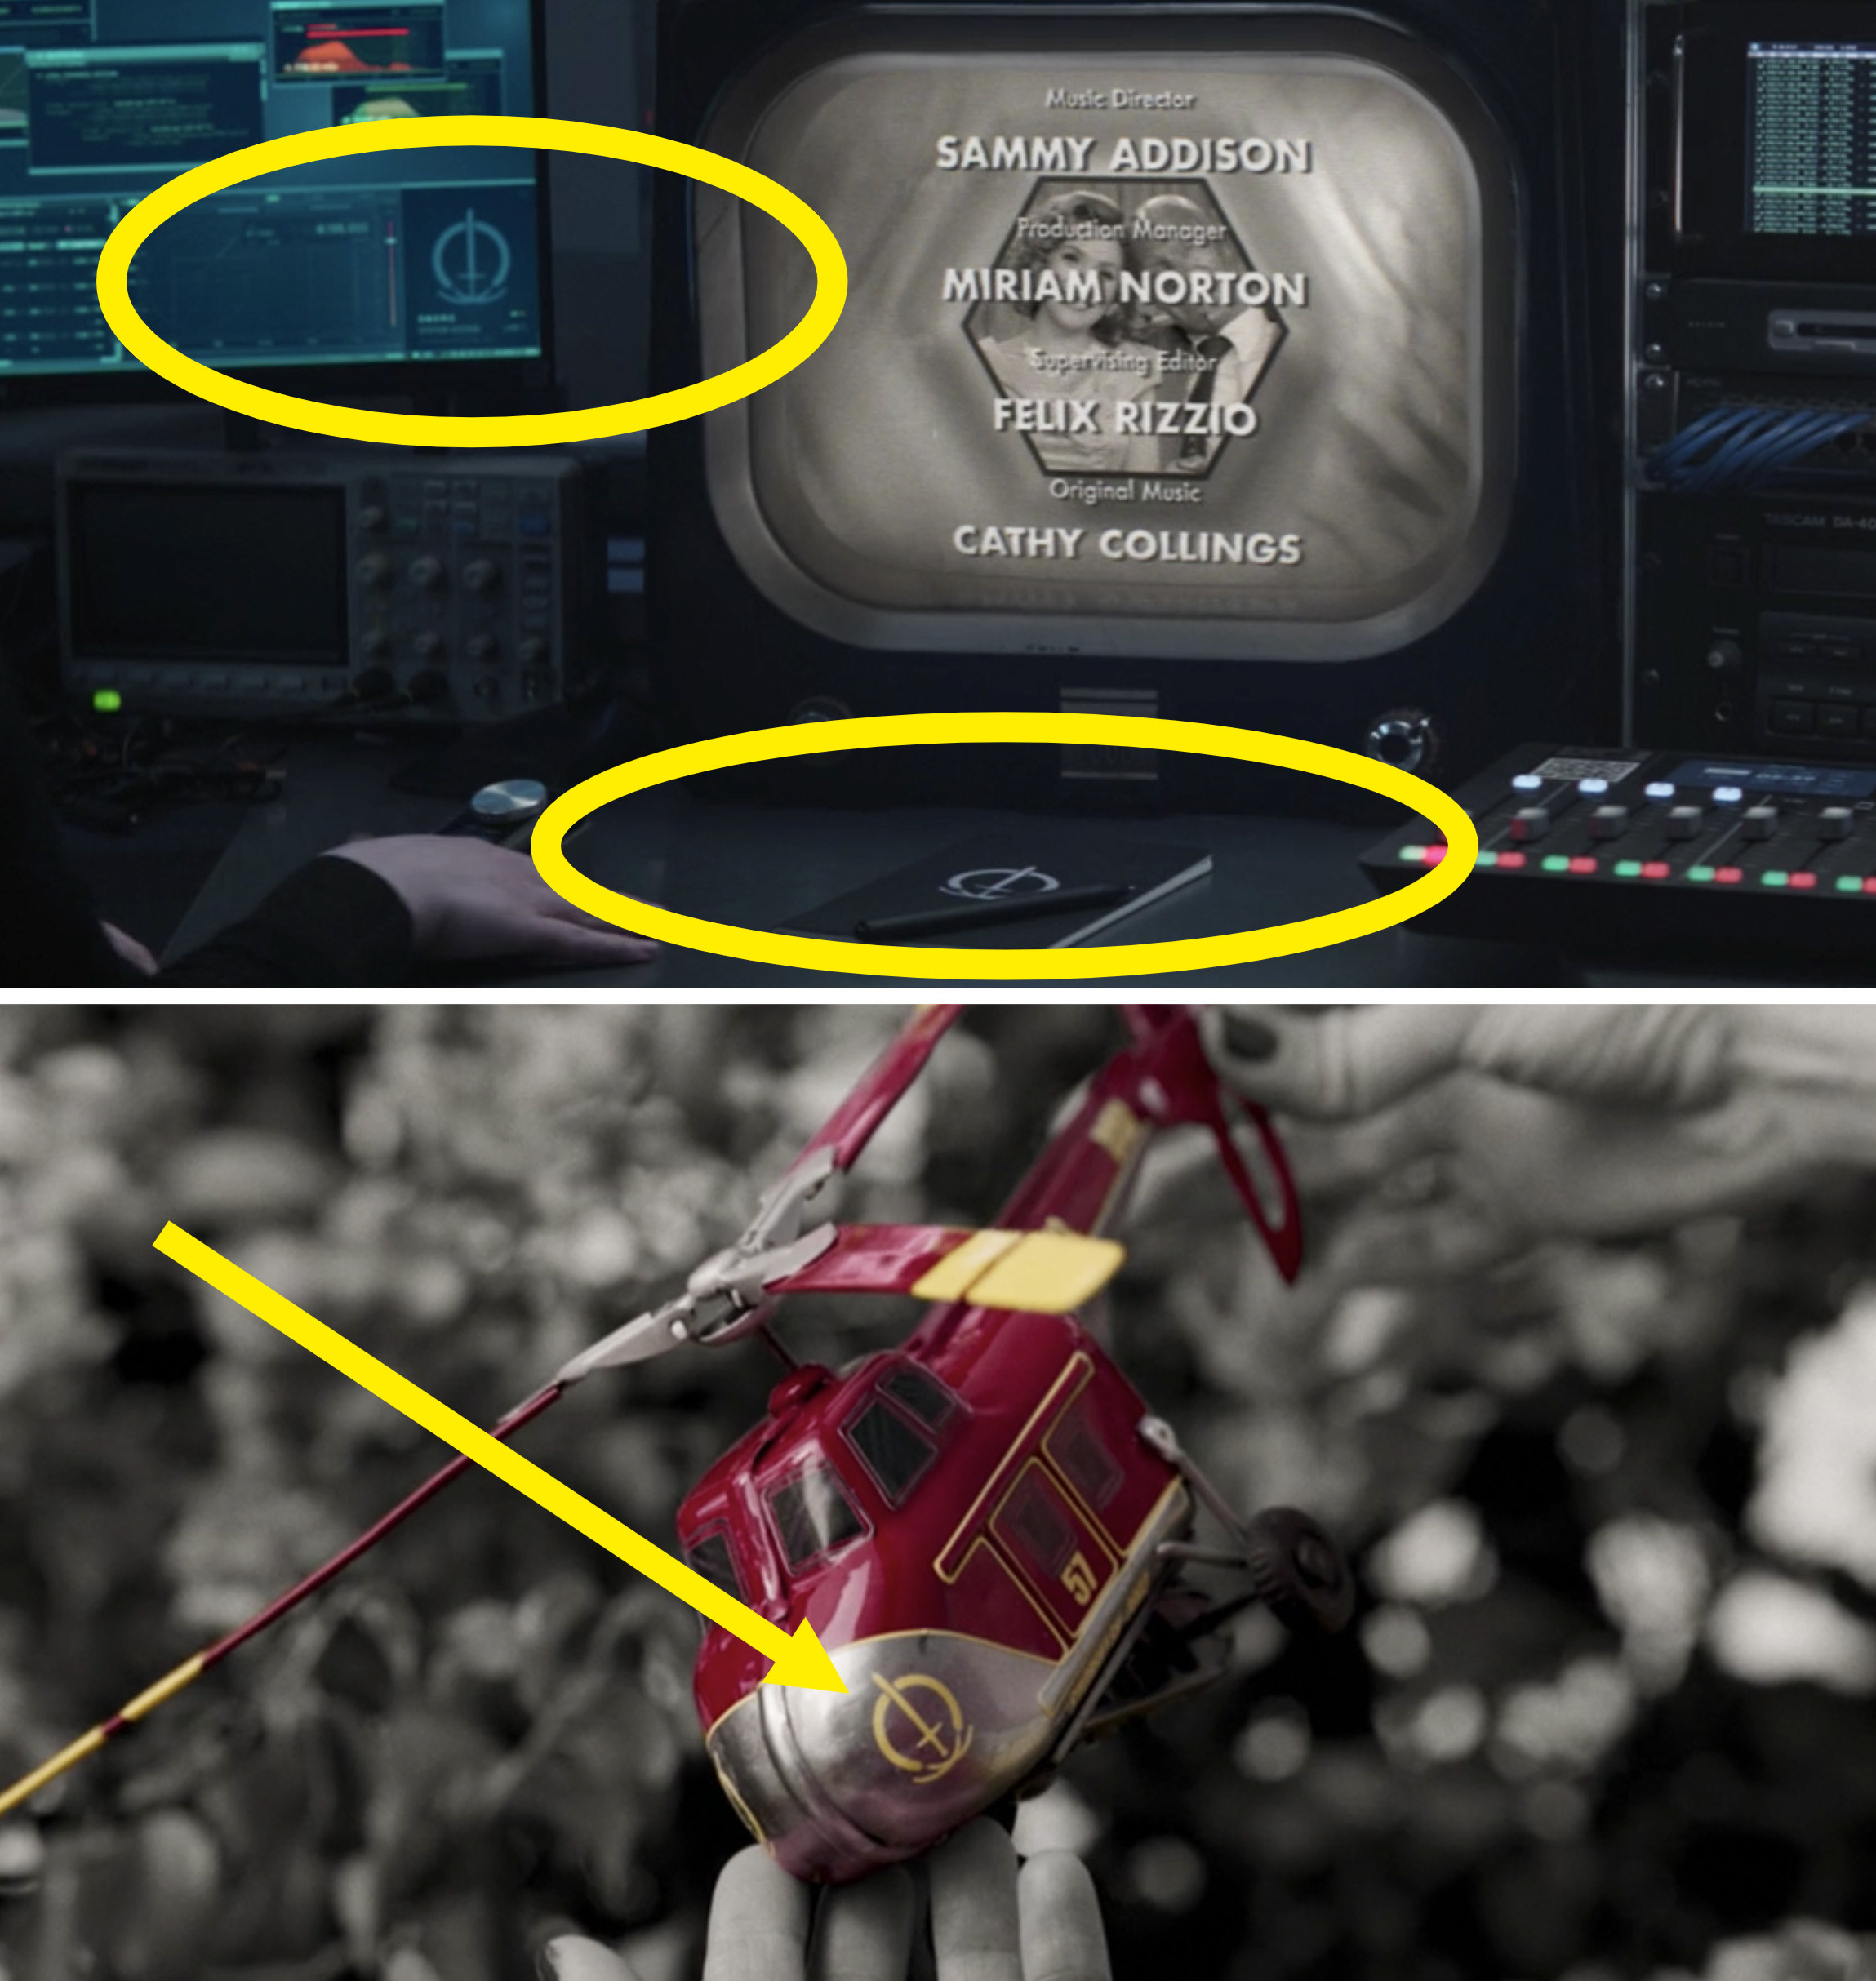 Circles and arrows pointing out the SWORD logo on a monitor and the red helicopter